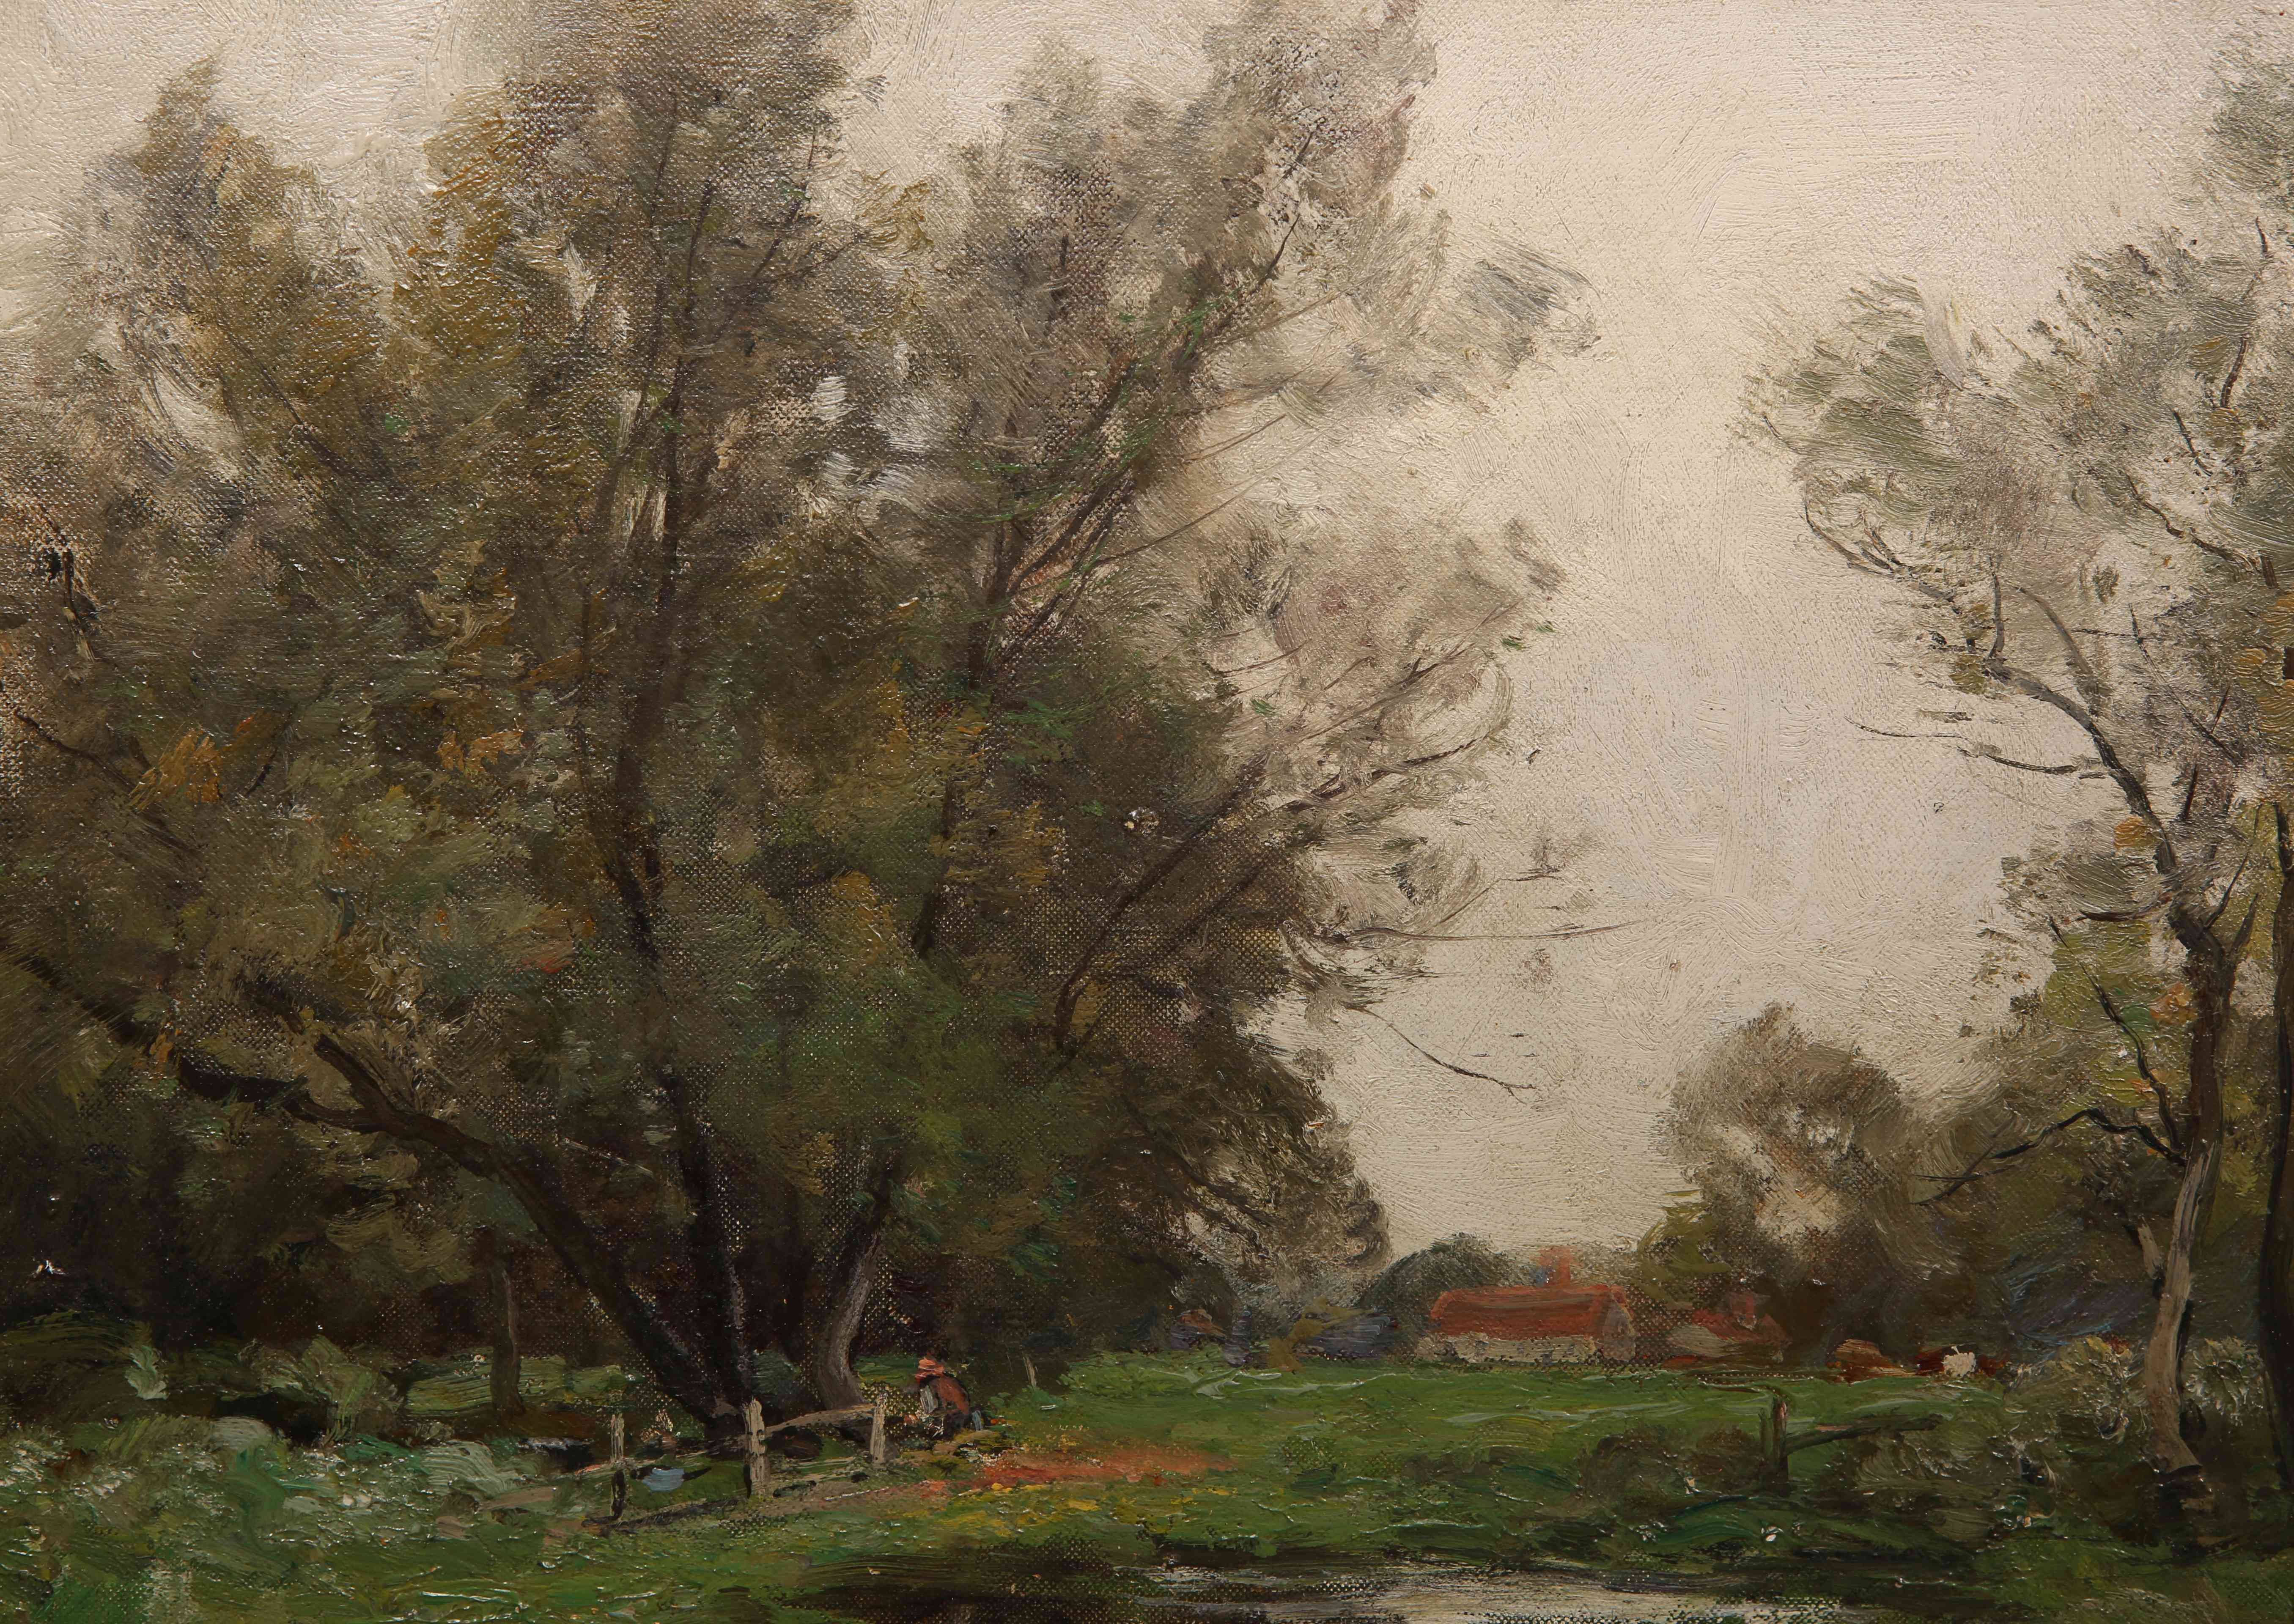 Lot 512 - JOHN NOBLE BARLOW (1861-1917), SHERE, SURREY, signed lower right, inscribed verso, oil on canvas,